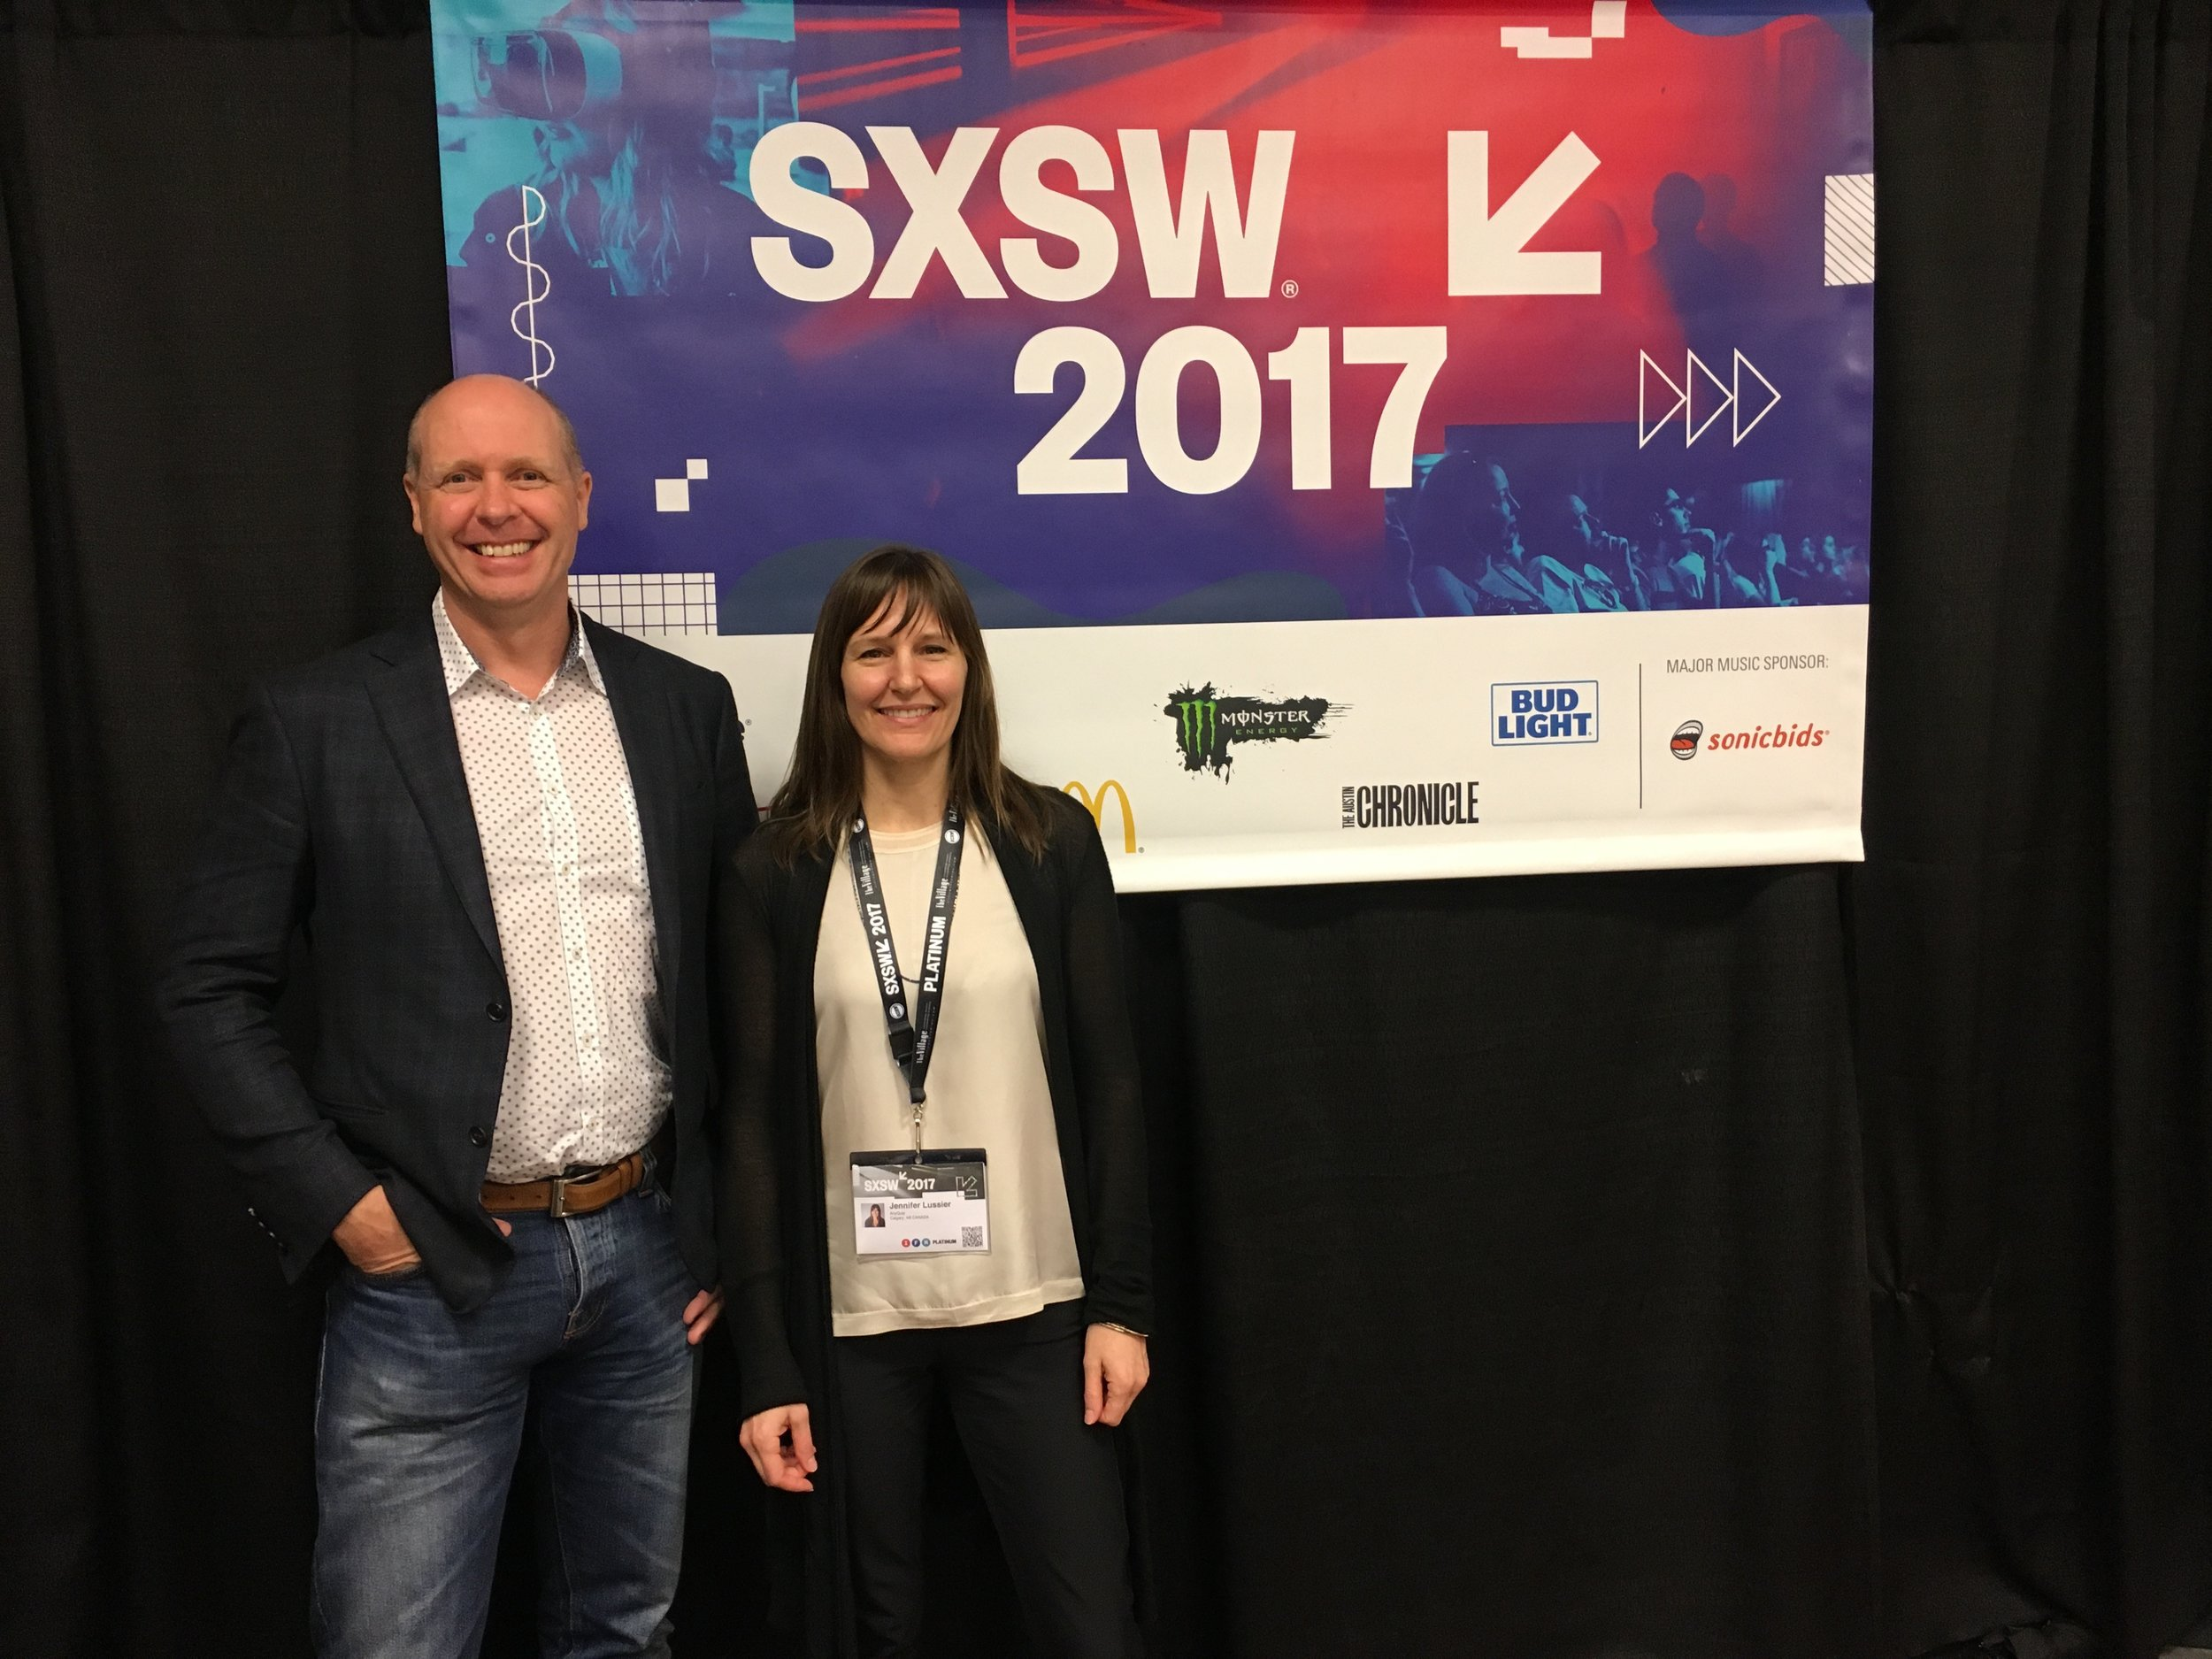 Jen Lussier (right) with Clark Johannson, President & CEO of Calgary's Clickspace Interactive (left) at SXSW 2017.